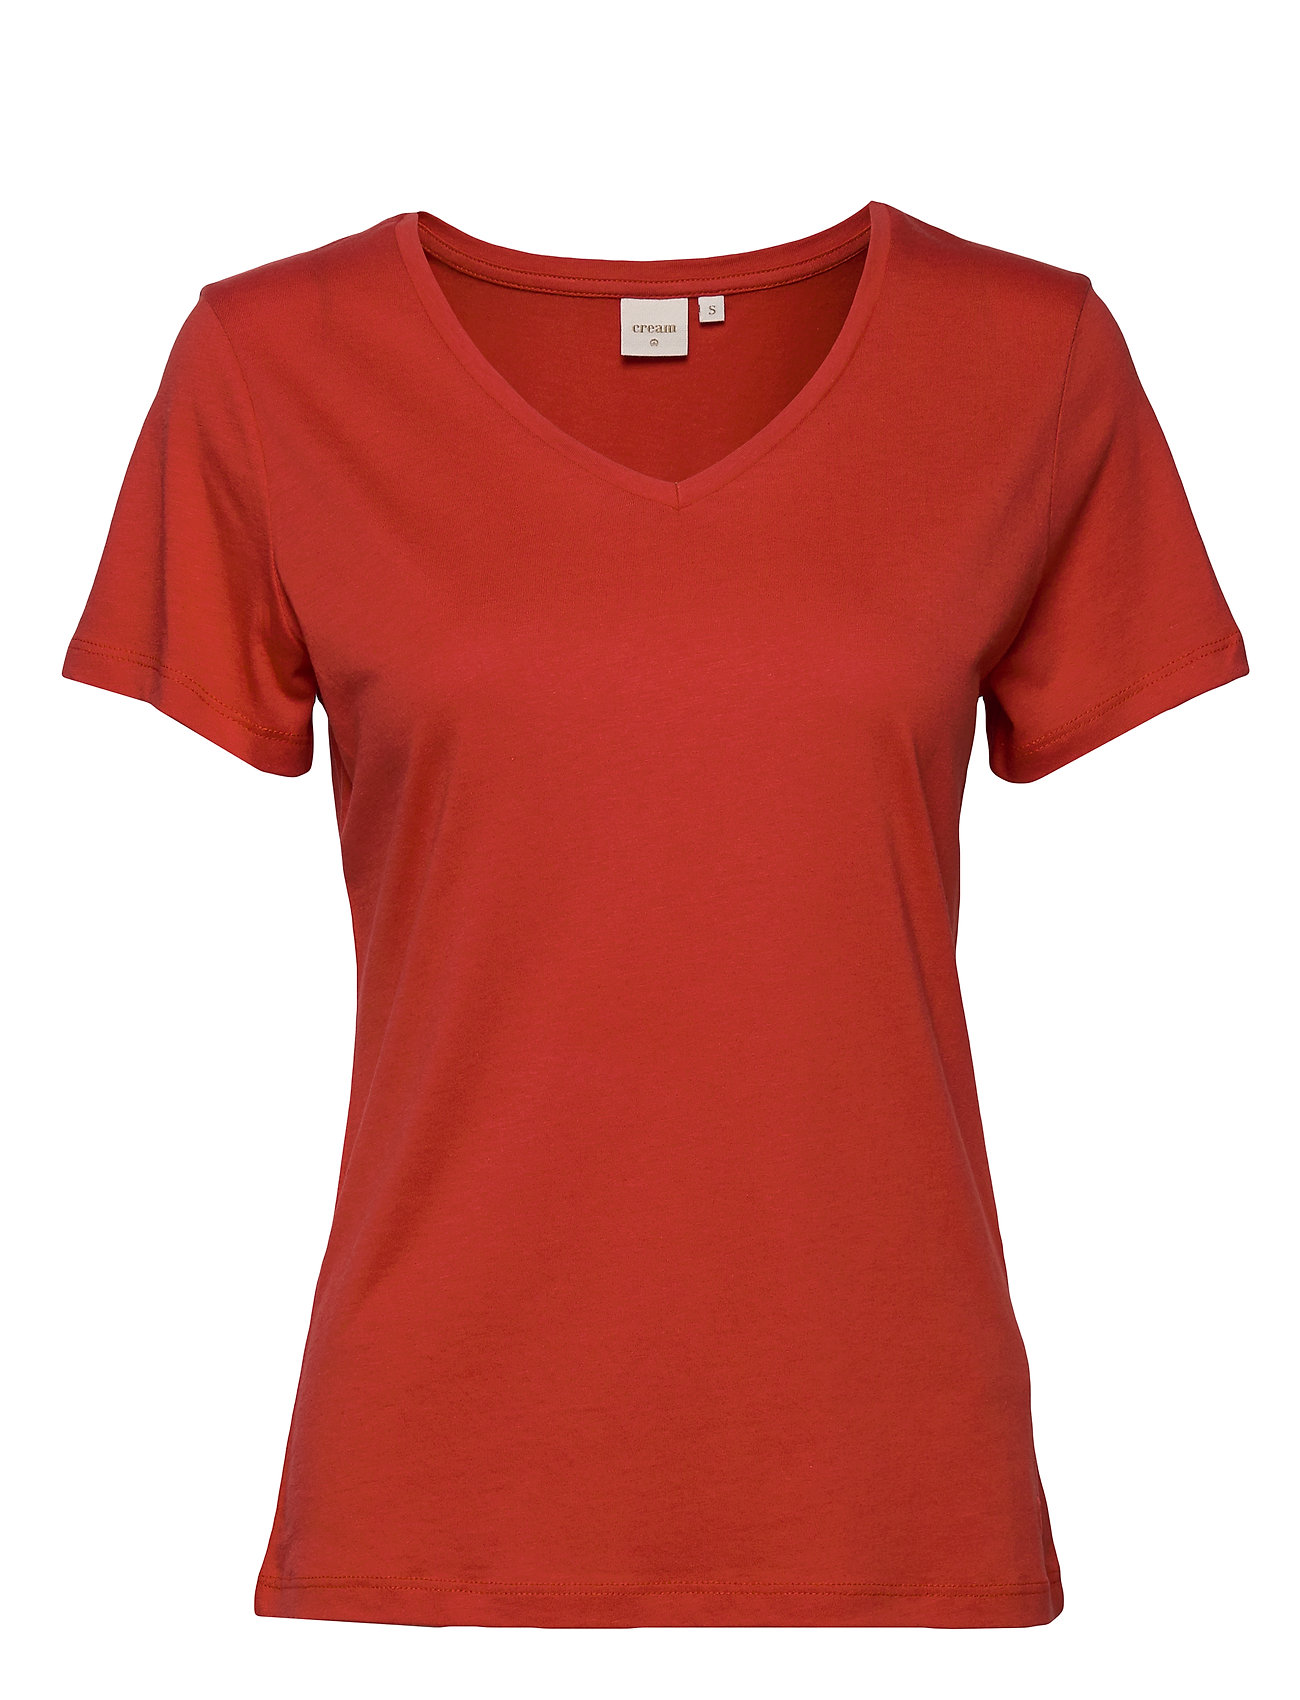 Cream Naia T-shirt - AURORA RED